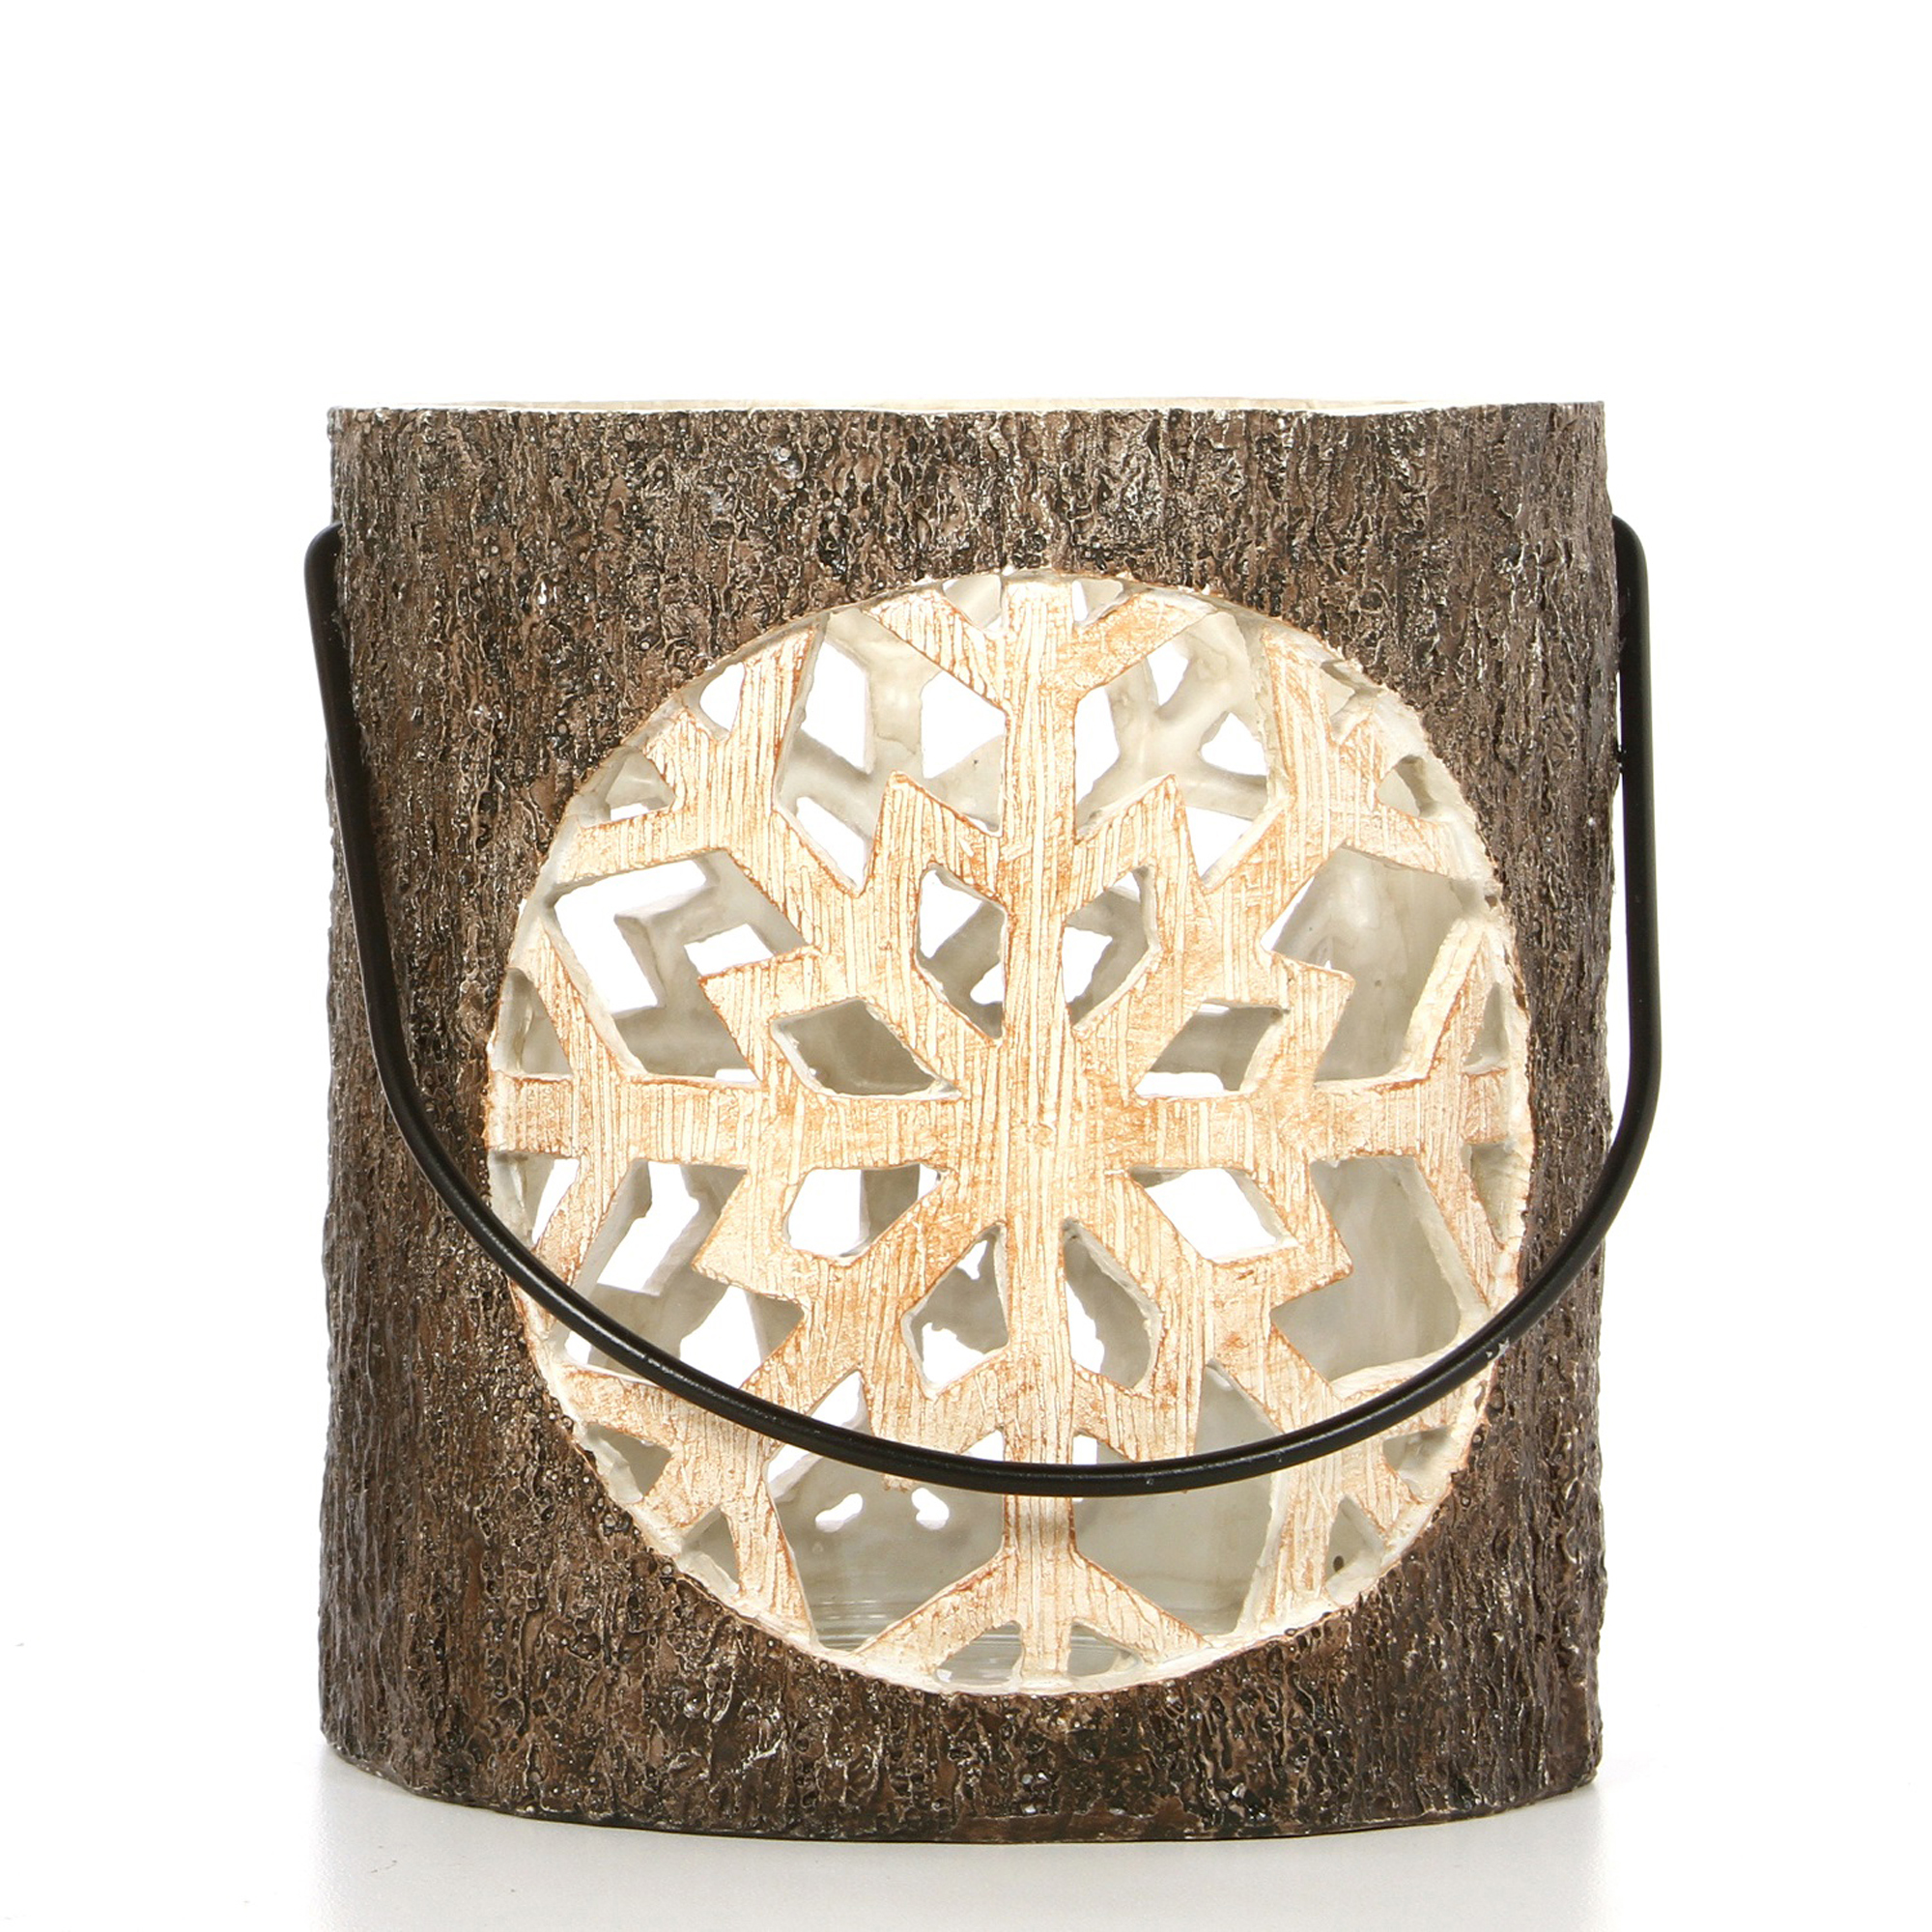 Mainstays Resin Snowflake Pillar Candle Holder with Glass, Faux Tree Bark Finish by HG Global, LLC